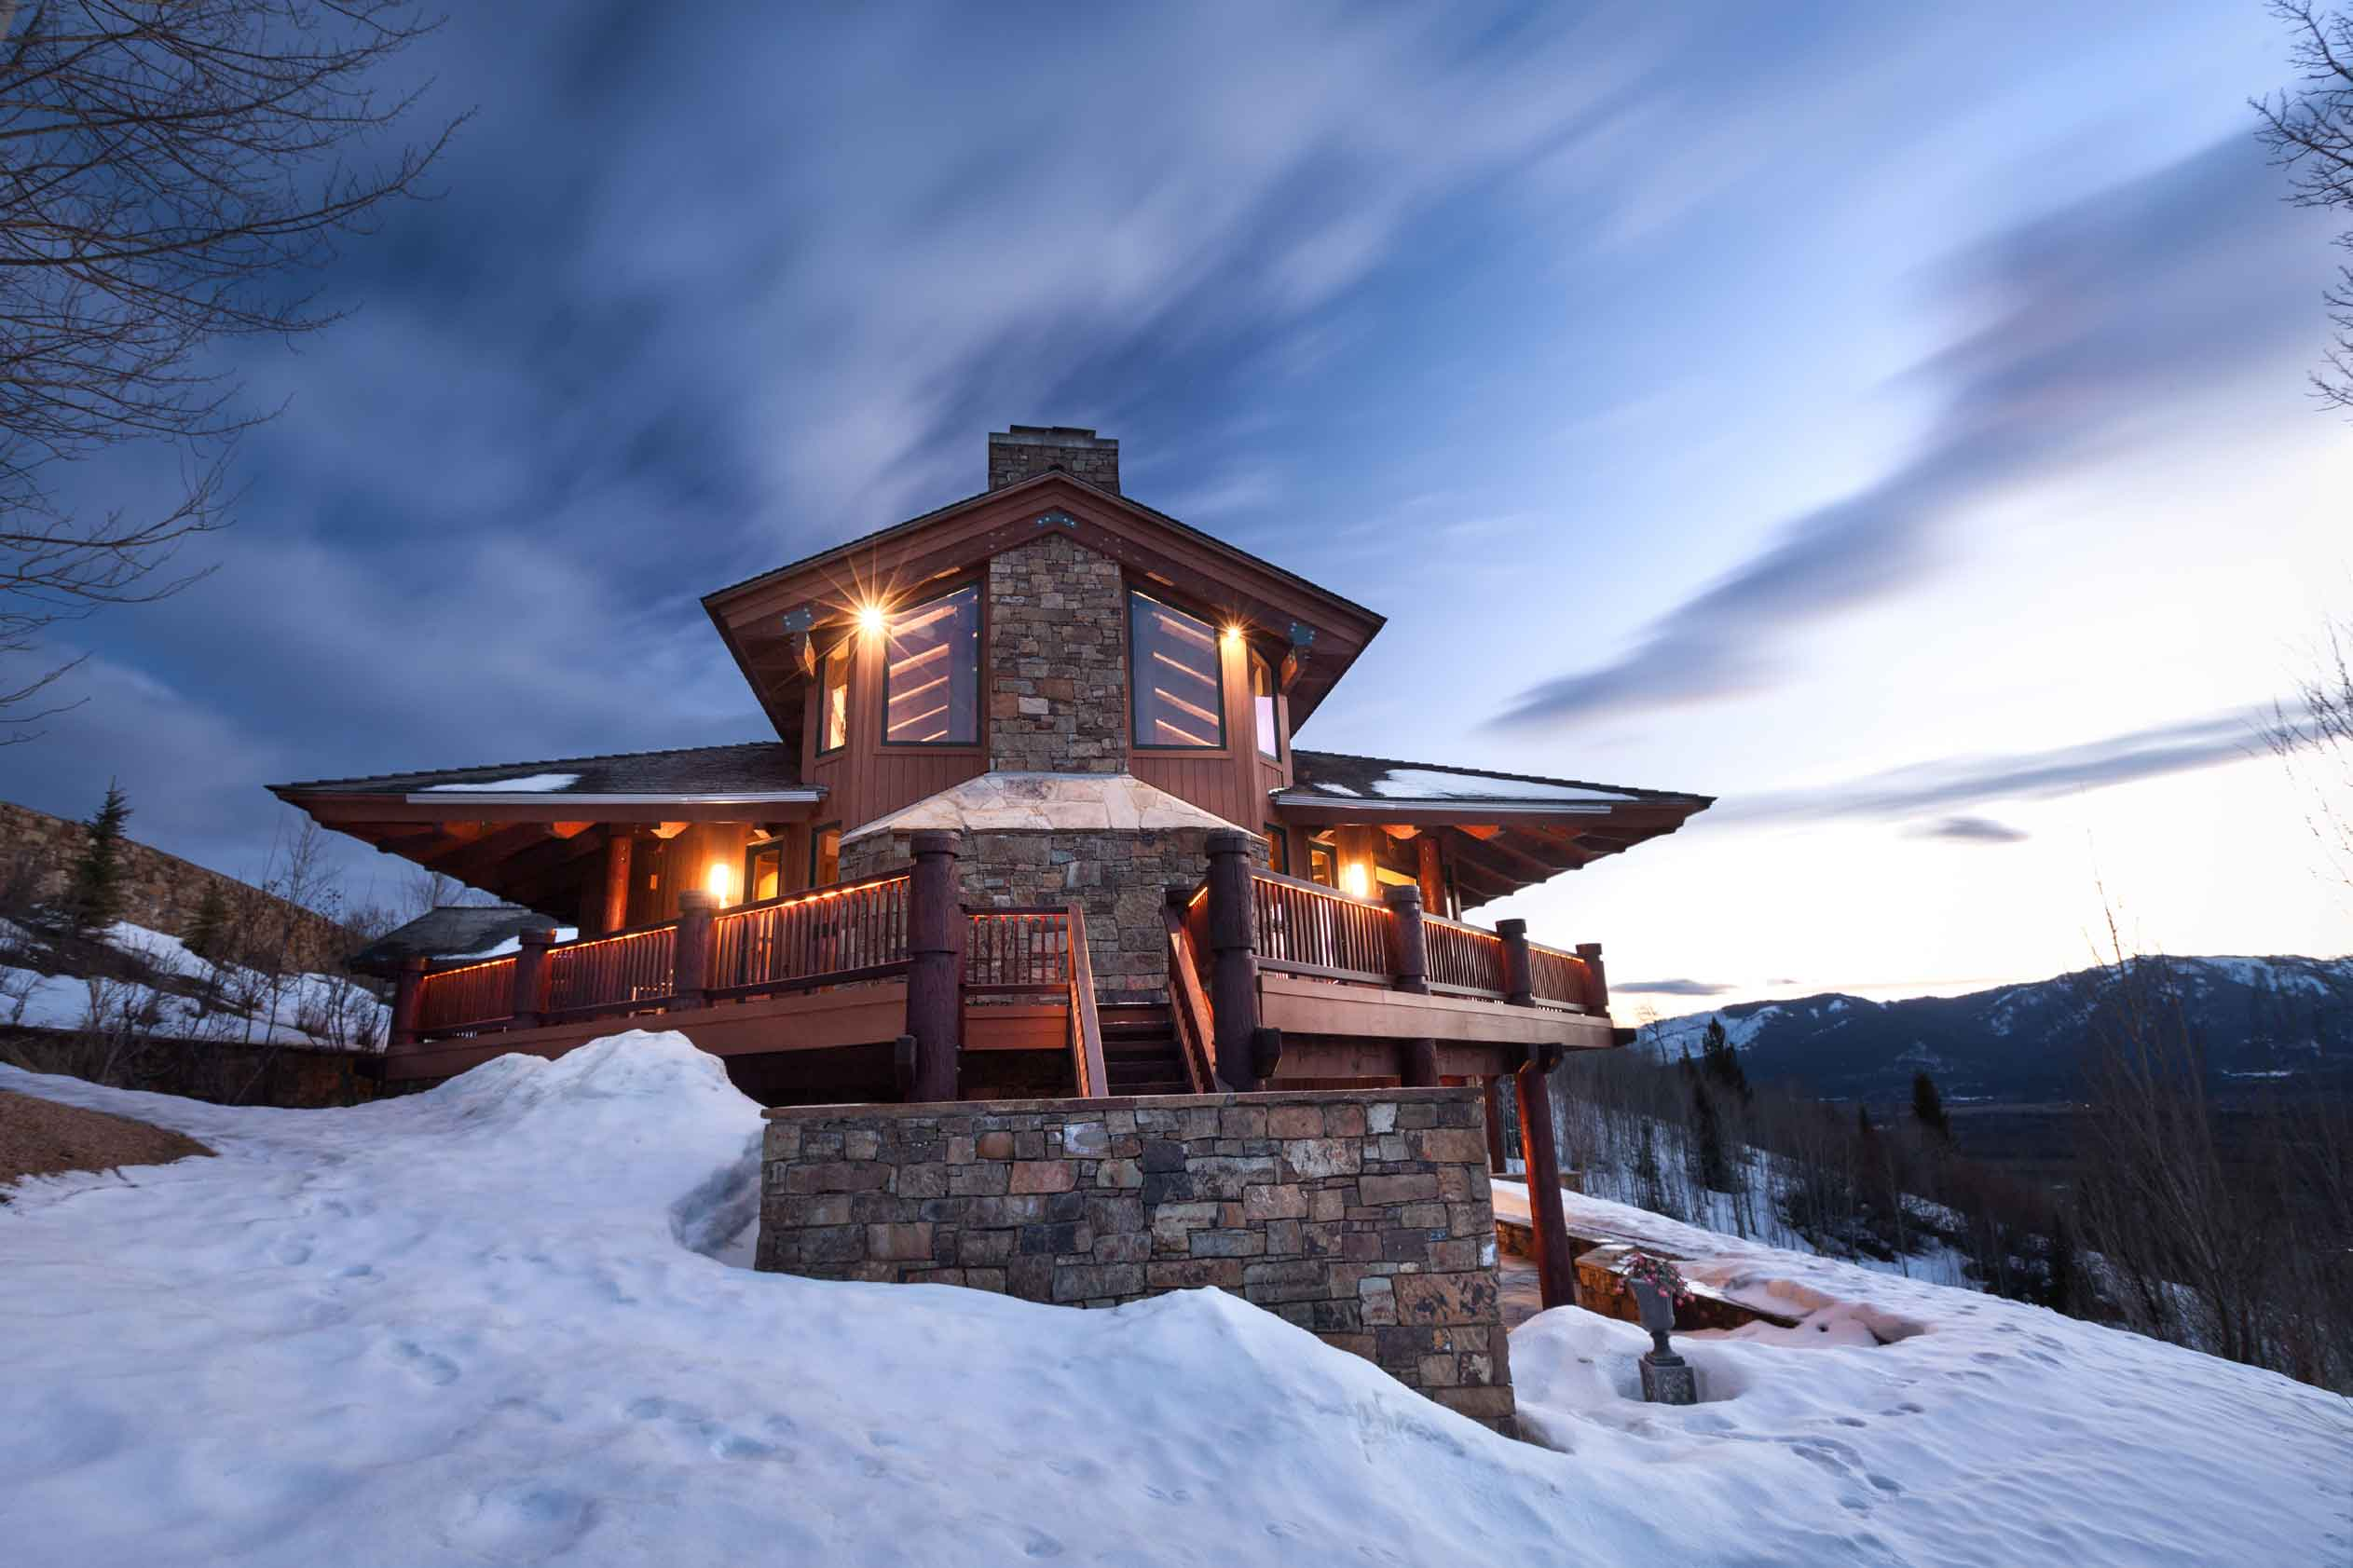 On 11 private acres near Gros Ventre butte, this contemporary marvel is set against the backdrop of Grand Teton National Park.